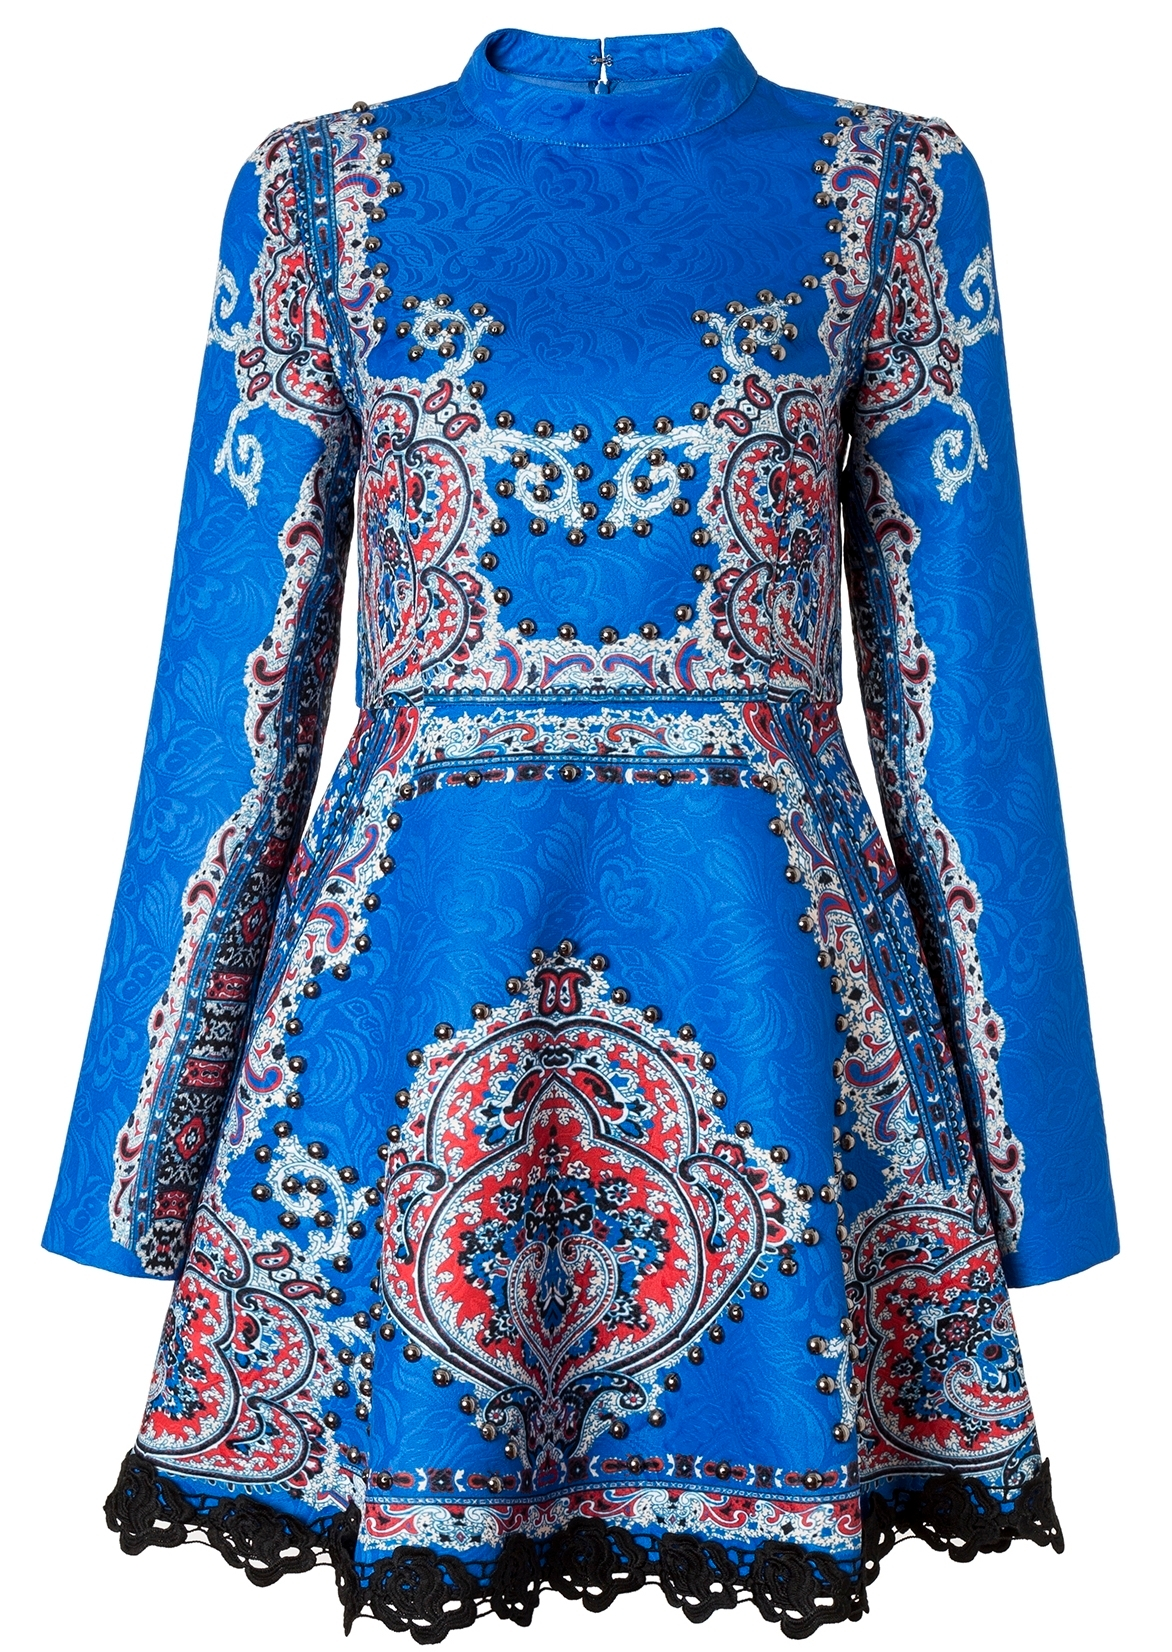 COMINO COUTURE HIGH NECK SKATER DRESS WITH SLEEVES